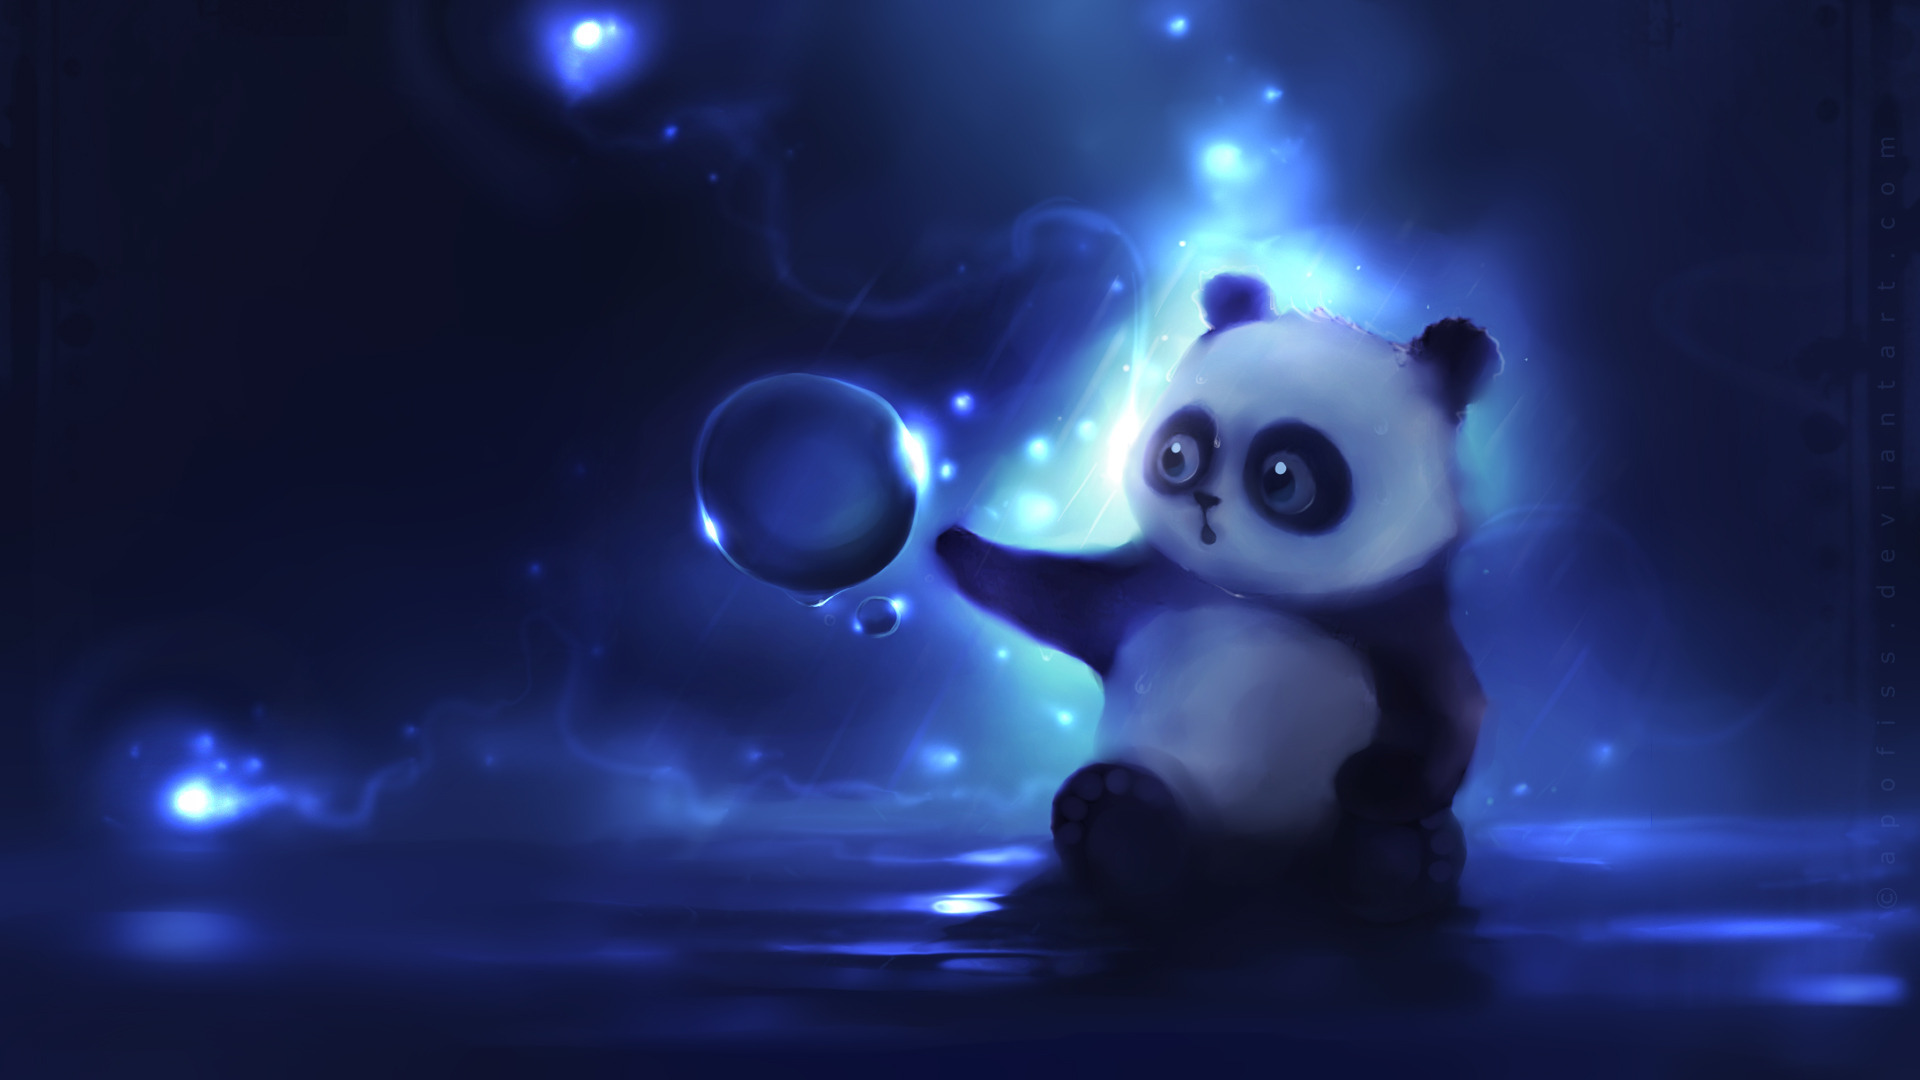 Cute Panda Animal HD Desktop Wallpaper HD Desktop Wallpaper 1920x1080